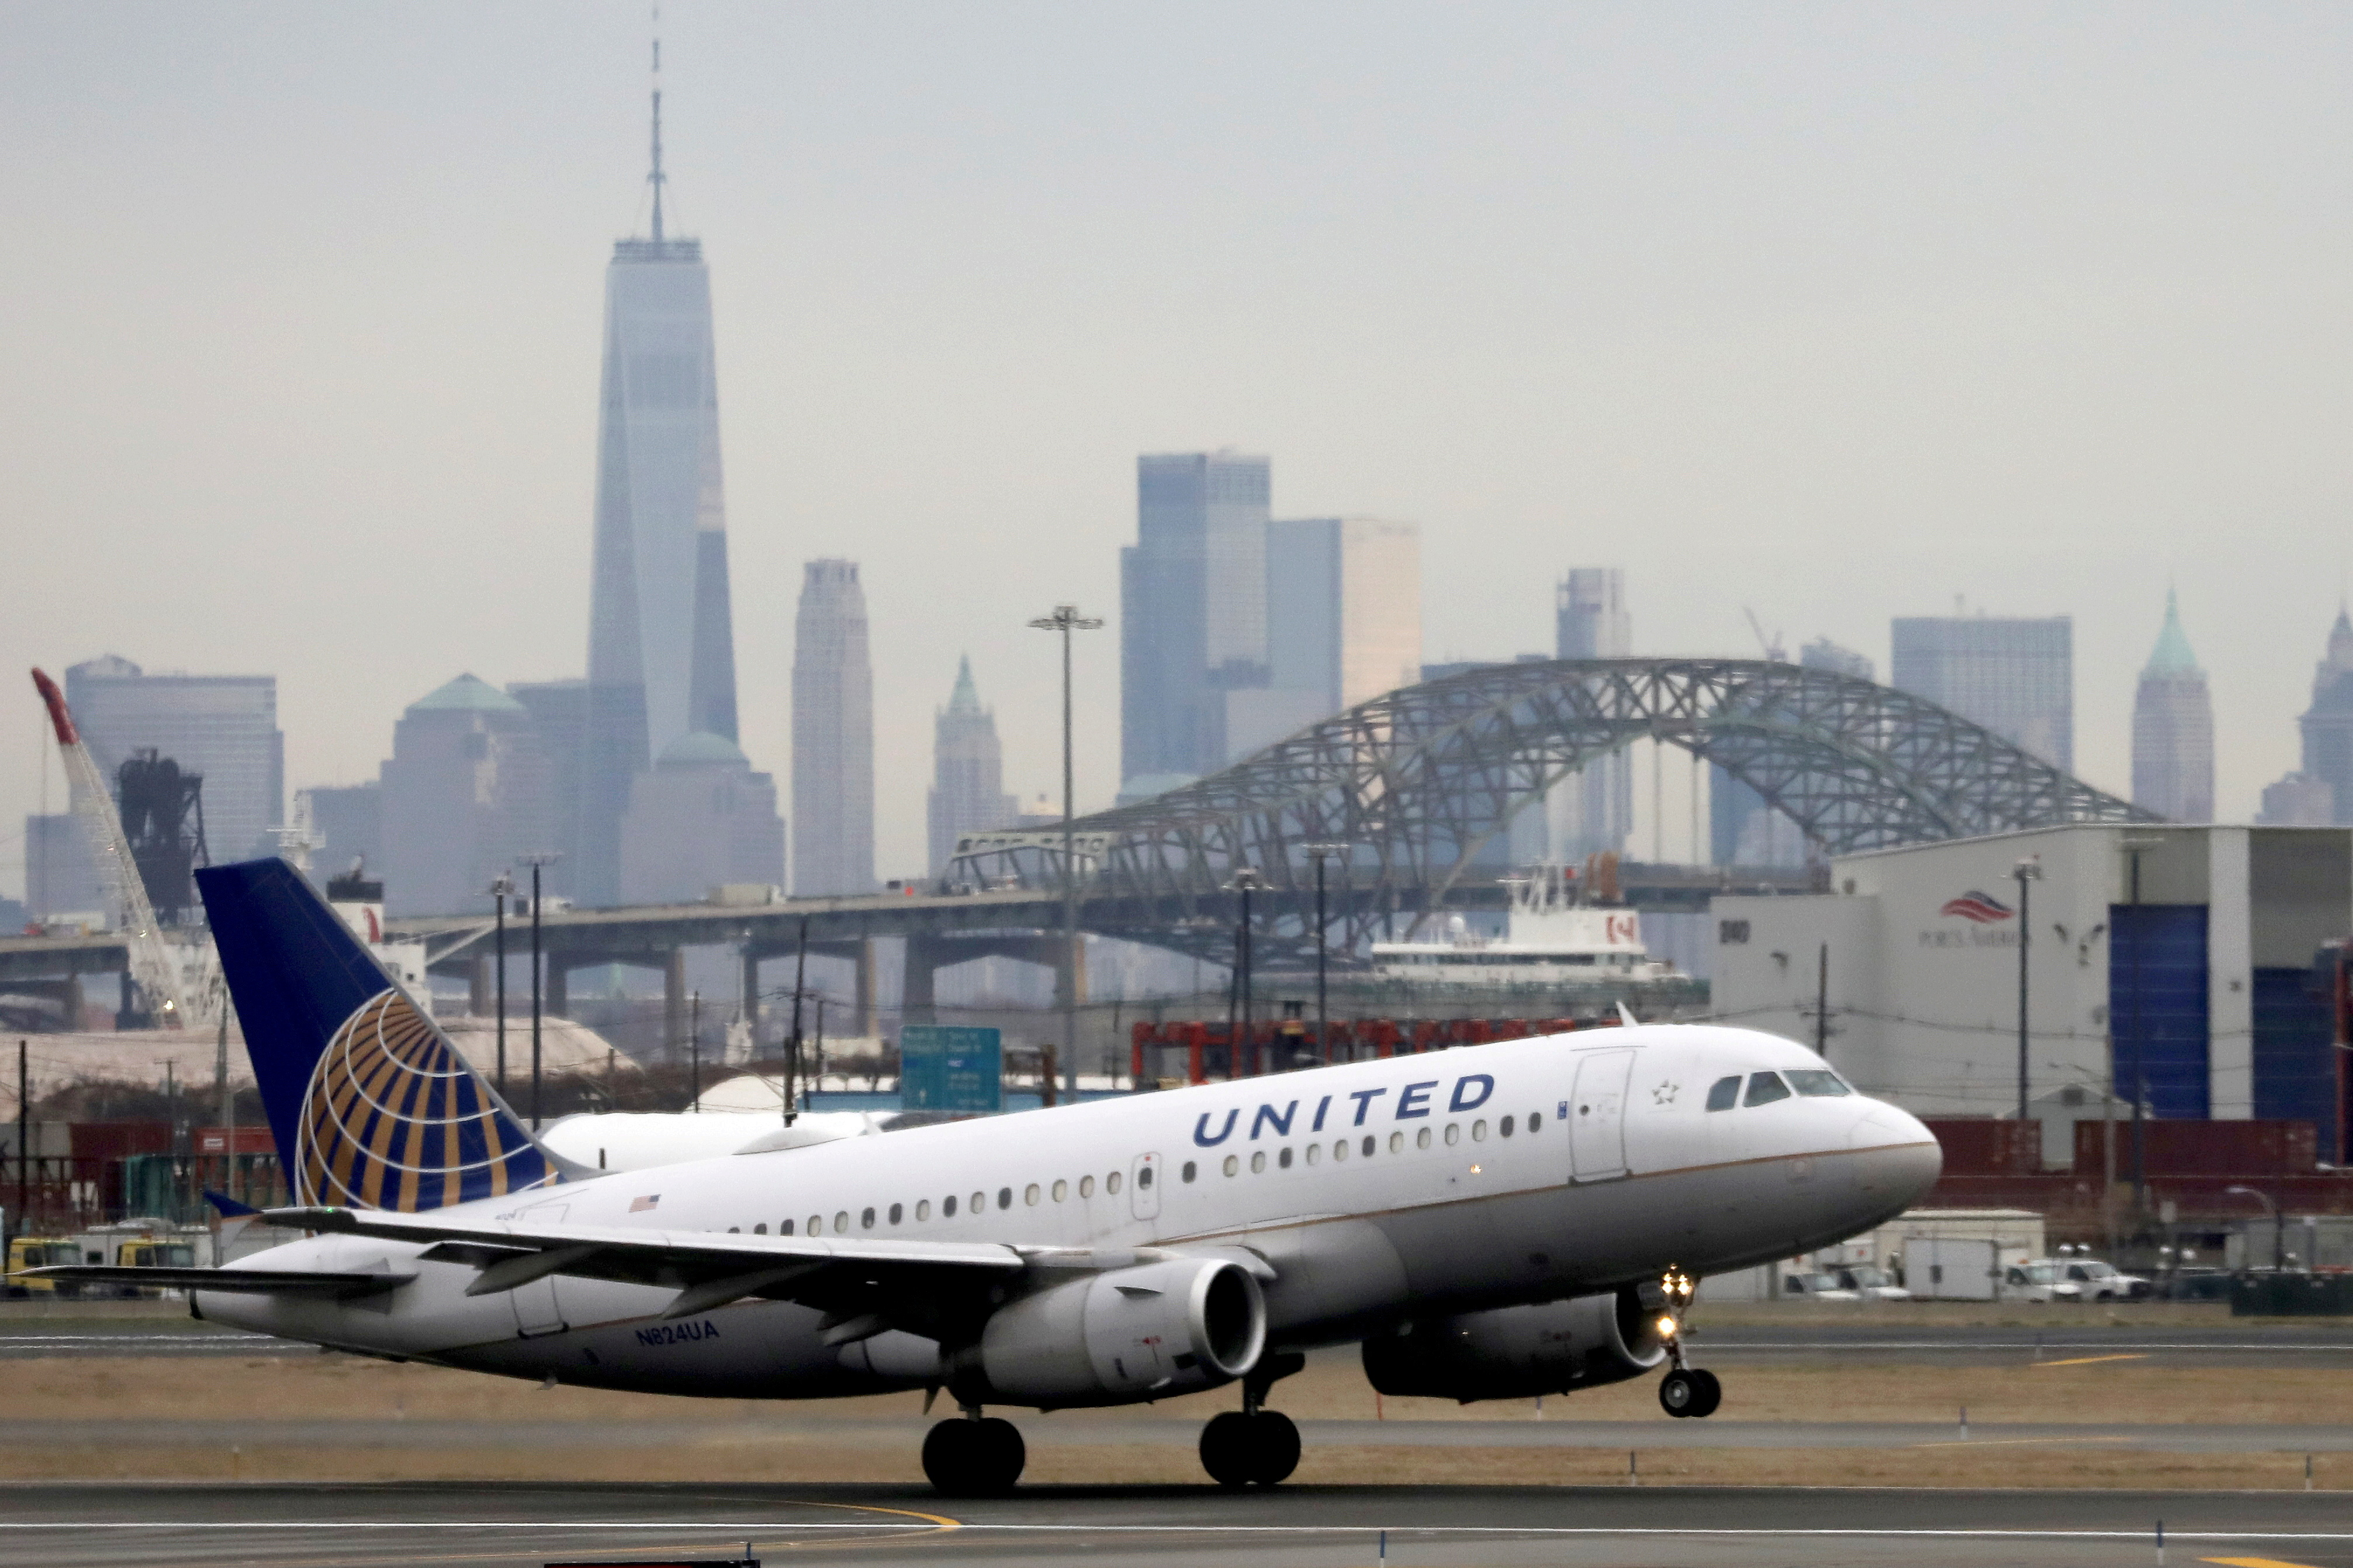 A United Airlines passenger jet takes off with New York City as a backdrop, at Newark Liberty International Airport. December 6, 2019. REUTERS/Chris Helgren